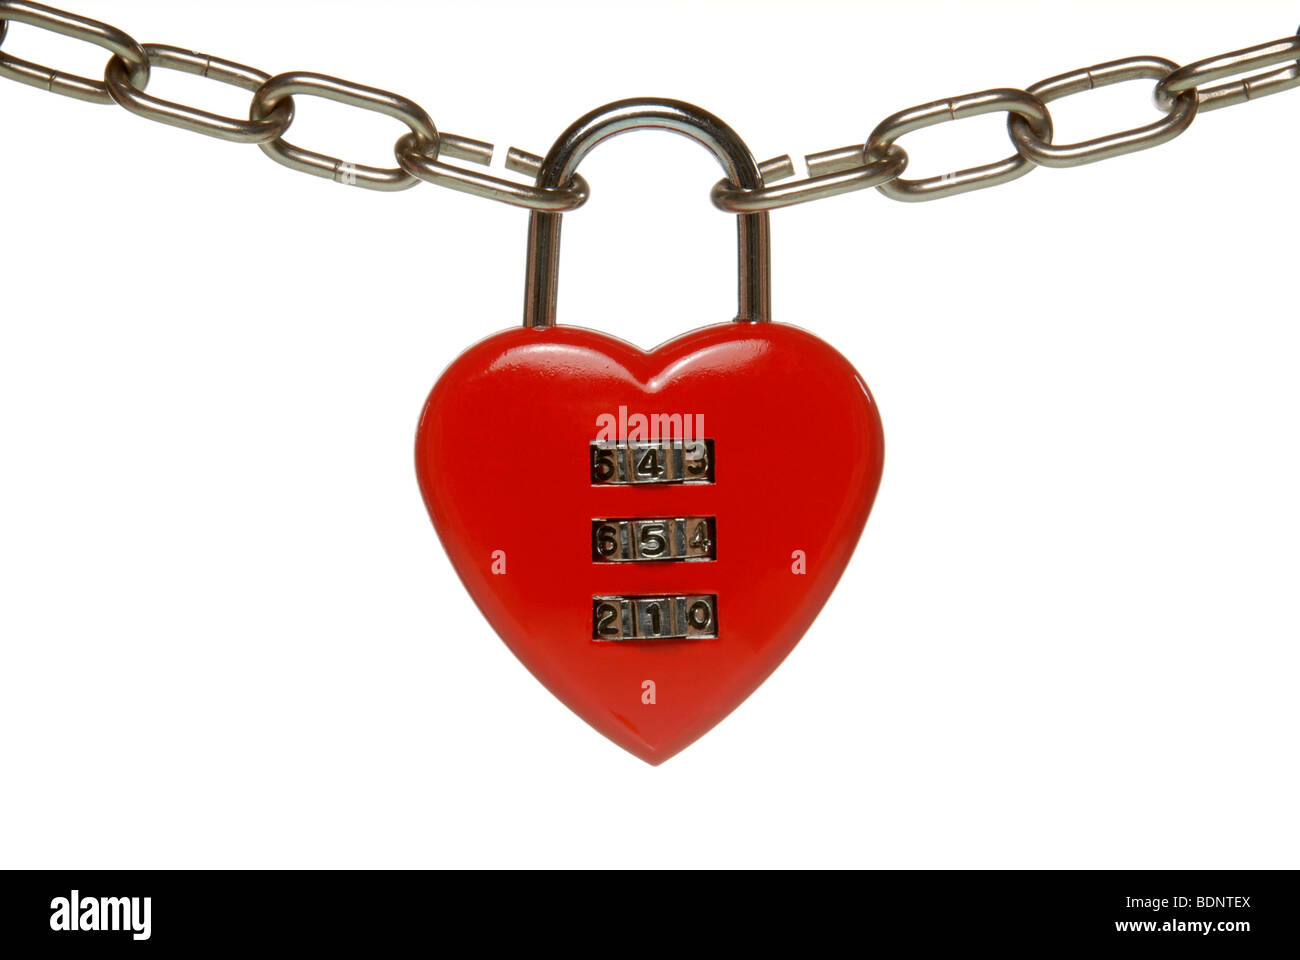 Heart lock with numeric code, symbolic image for finding a partner, knowing the correct code - Stock Image